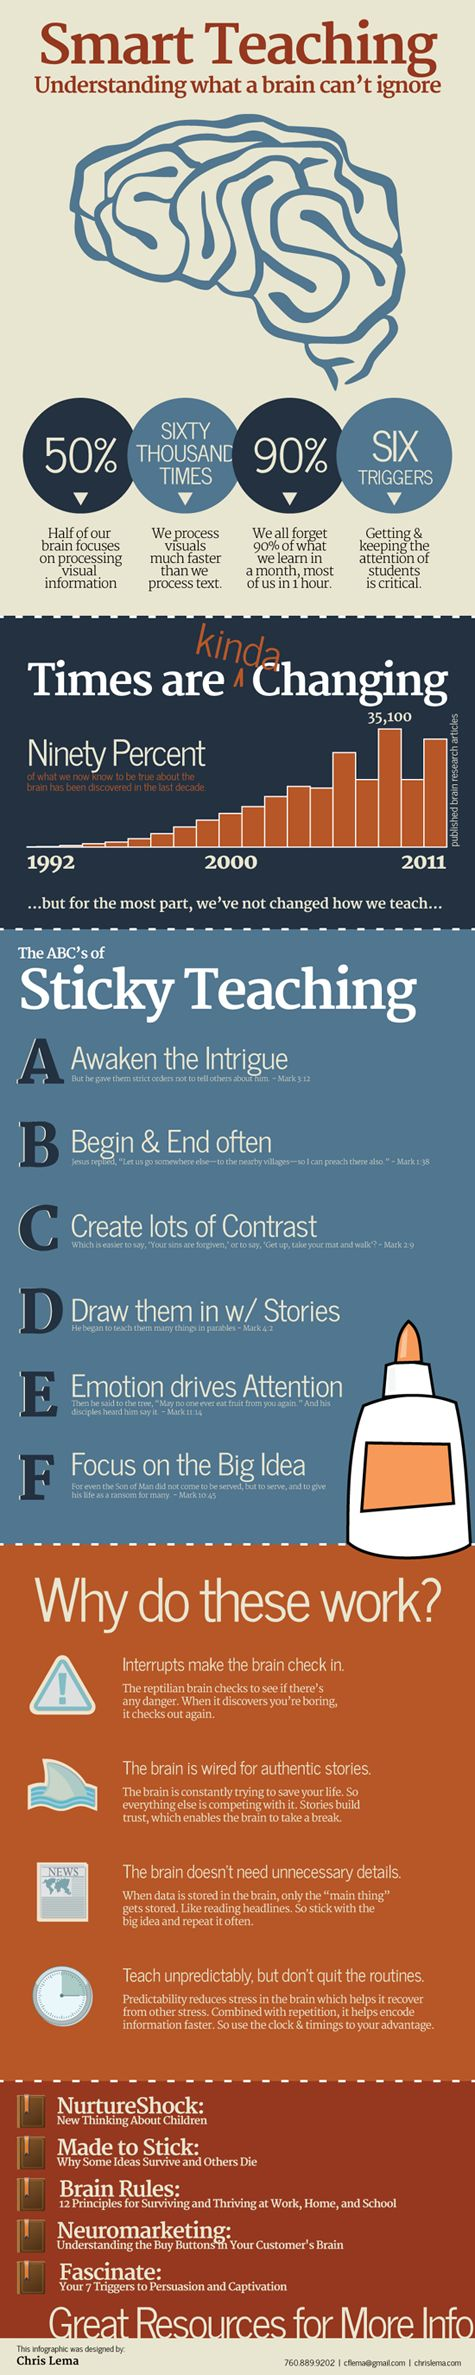 Sticky Teaching < whenever we're presenting is to make sure our message sticks...